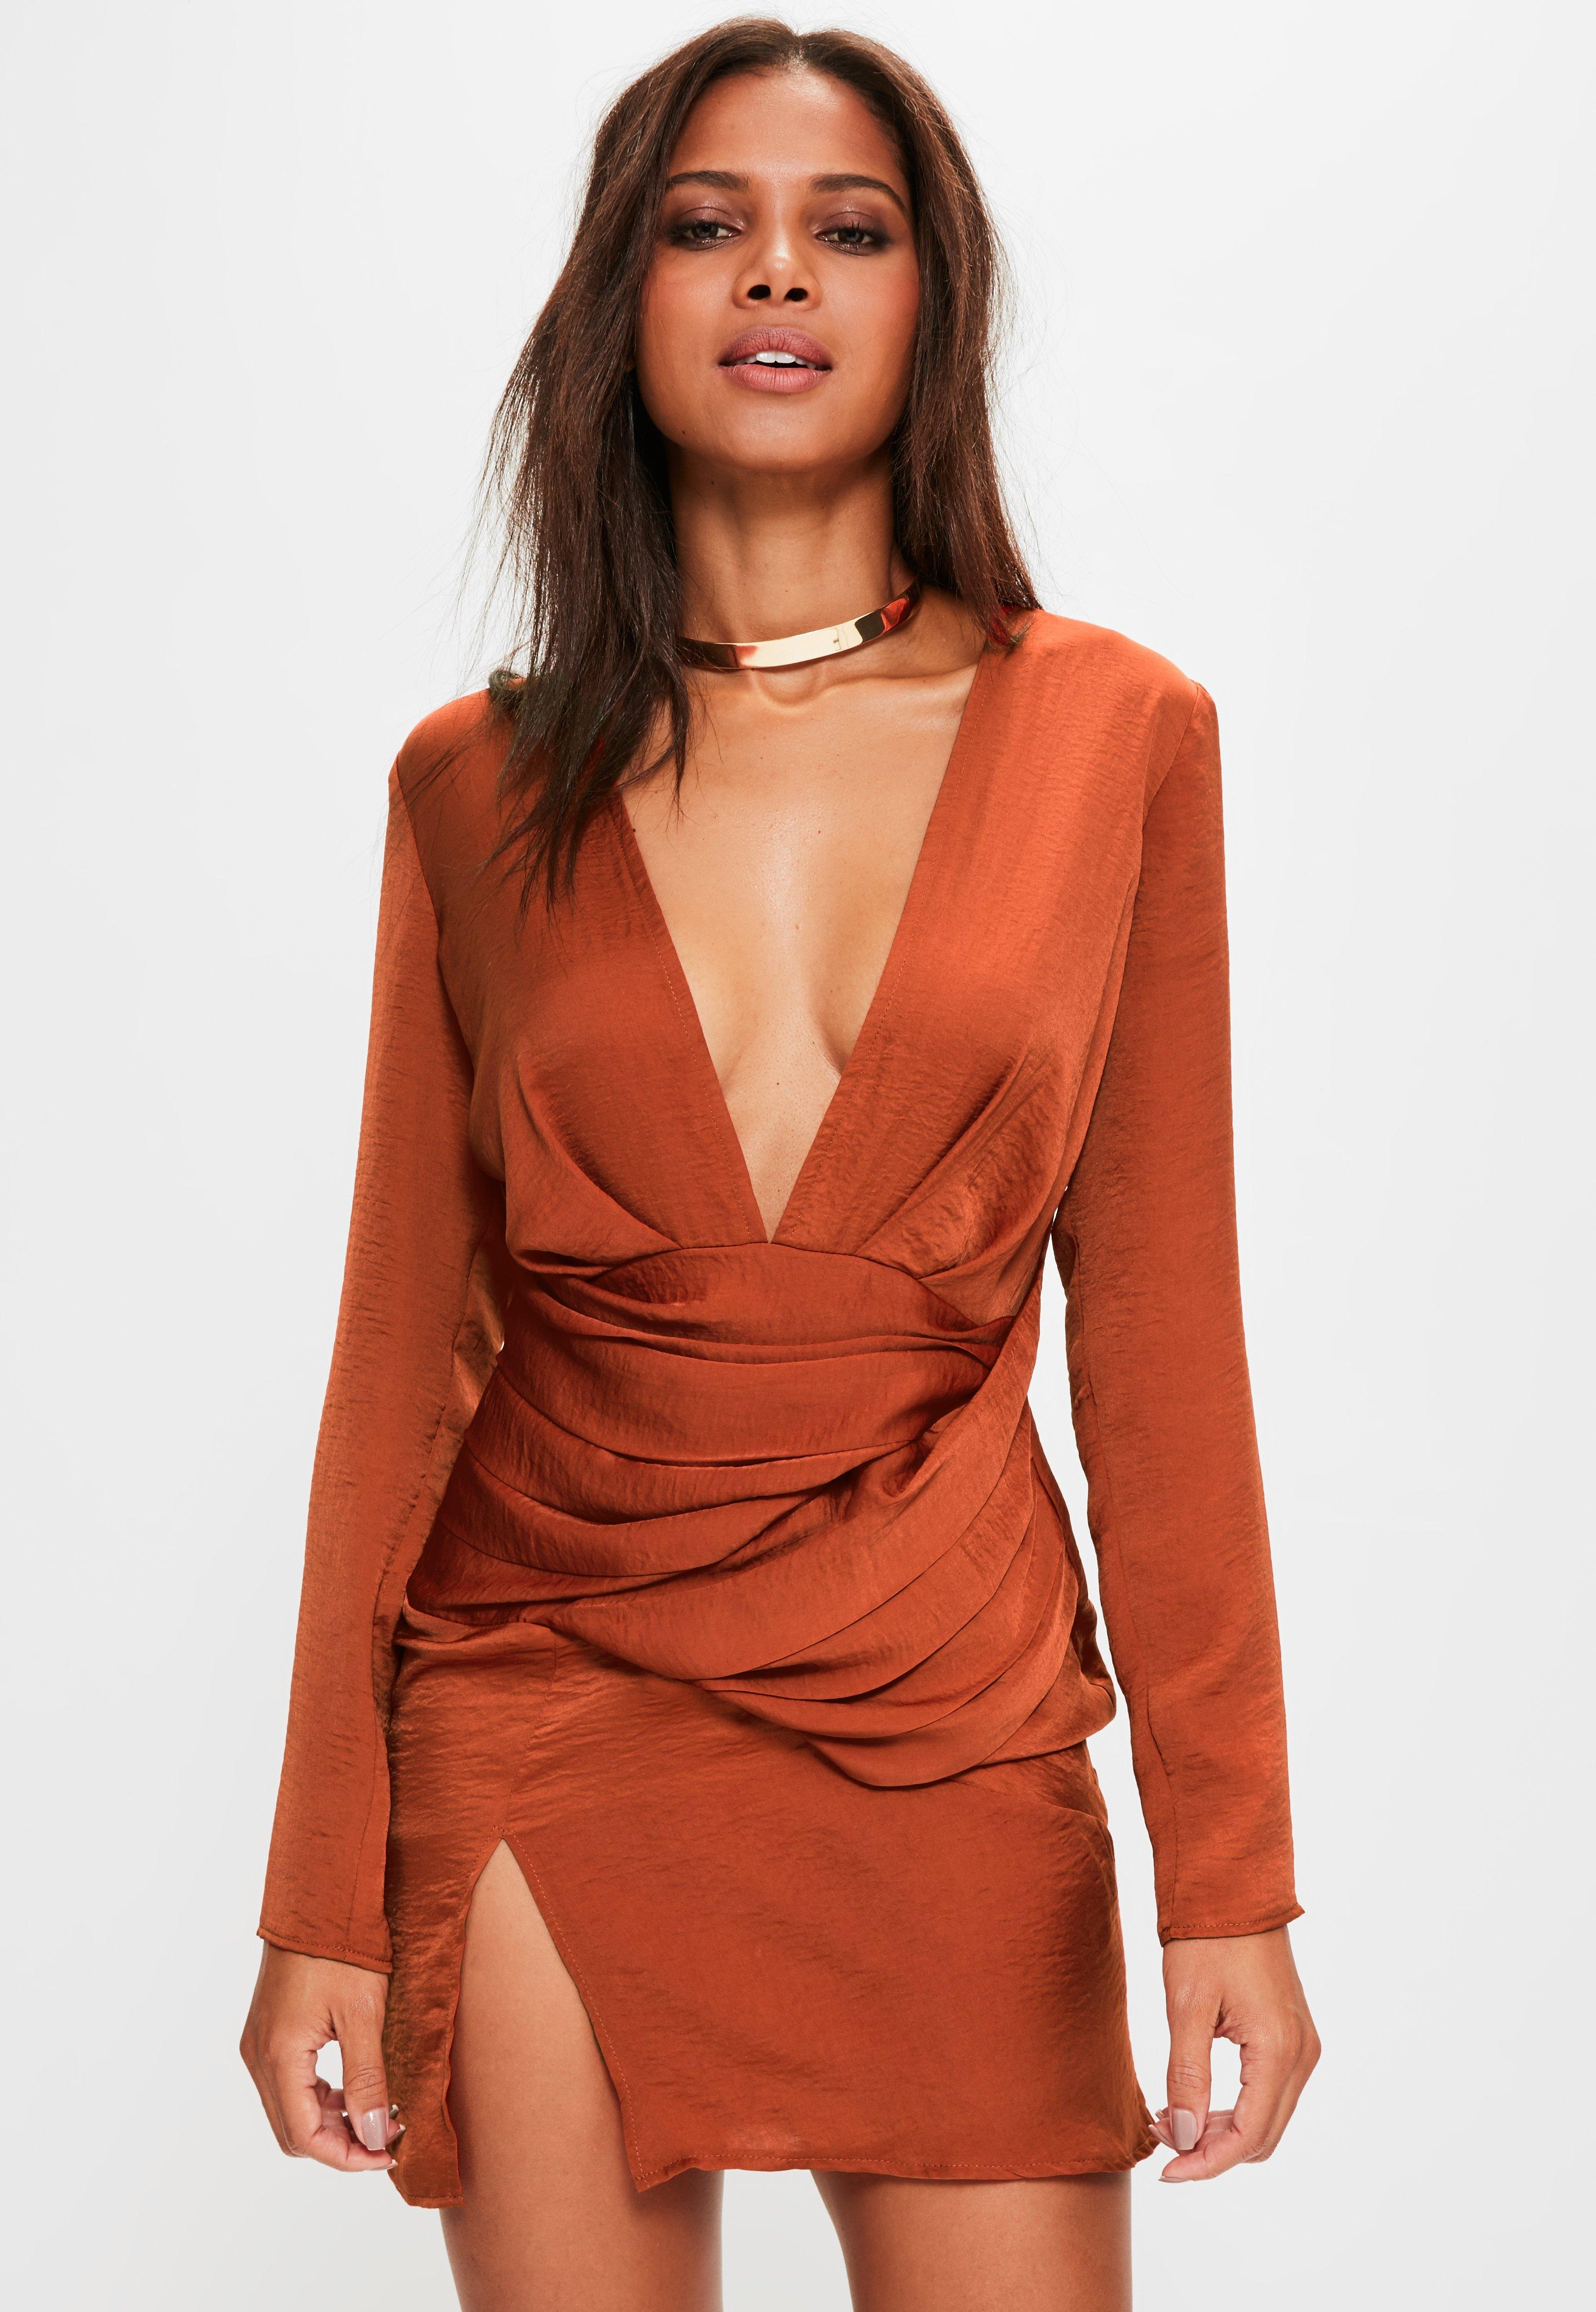 Satin dress shop silky dresses online missguided ombrellifo Images